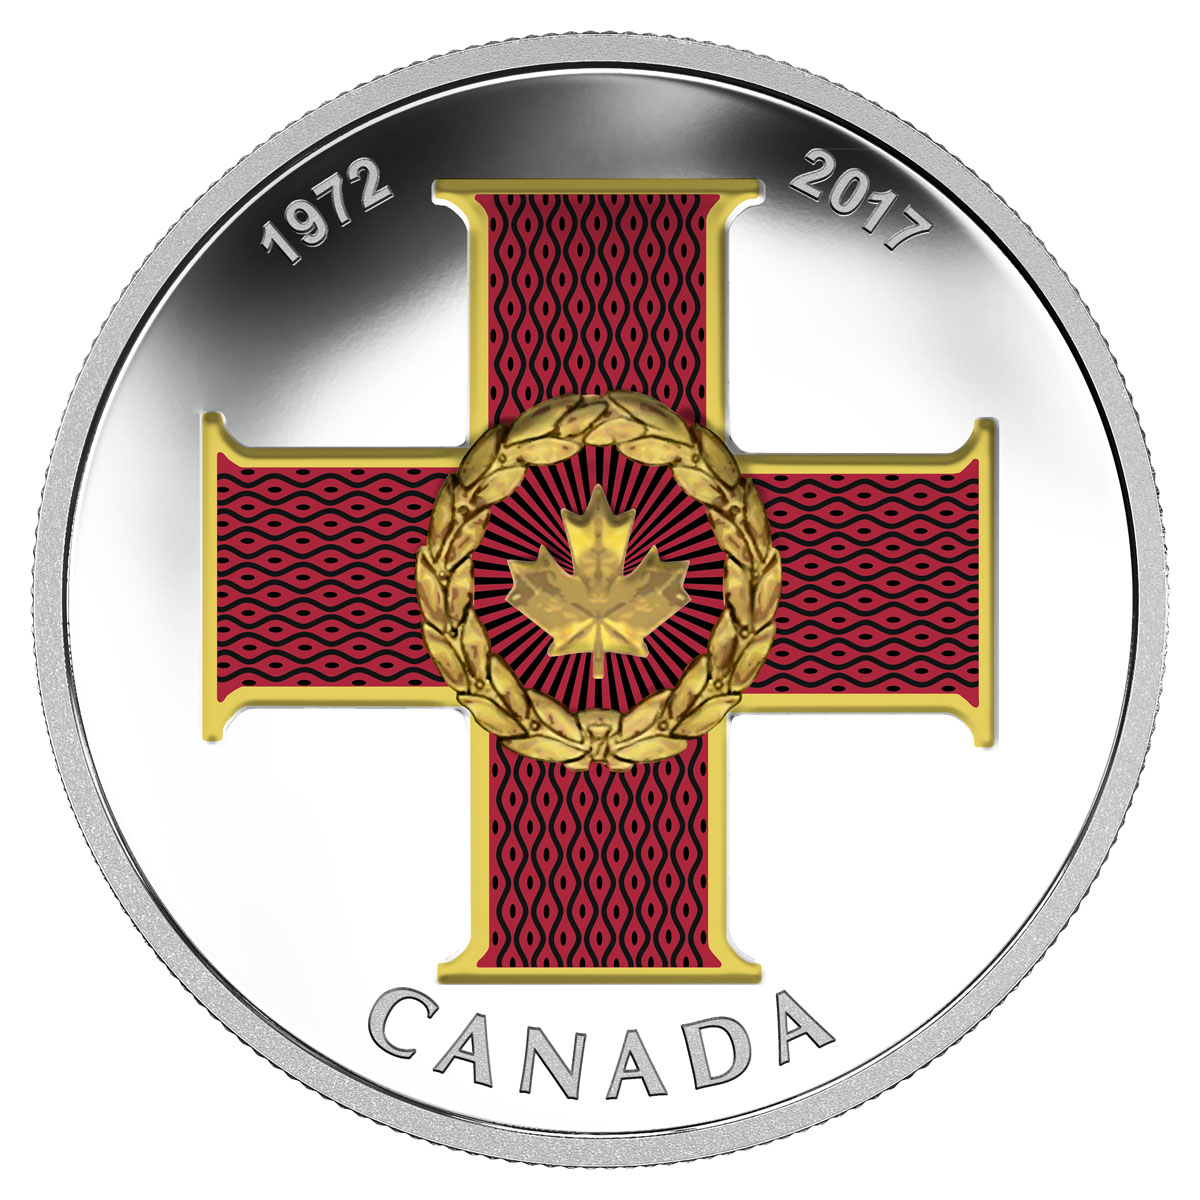 2017 Canada Canadian Honors - Cross of Valor 1 oz Silver Colorized Proof $20 Coin GEM Proof OGP